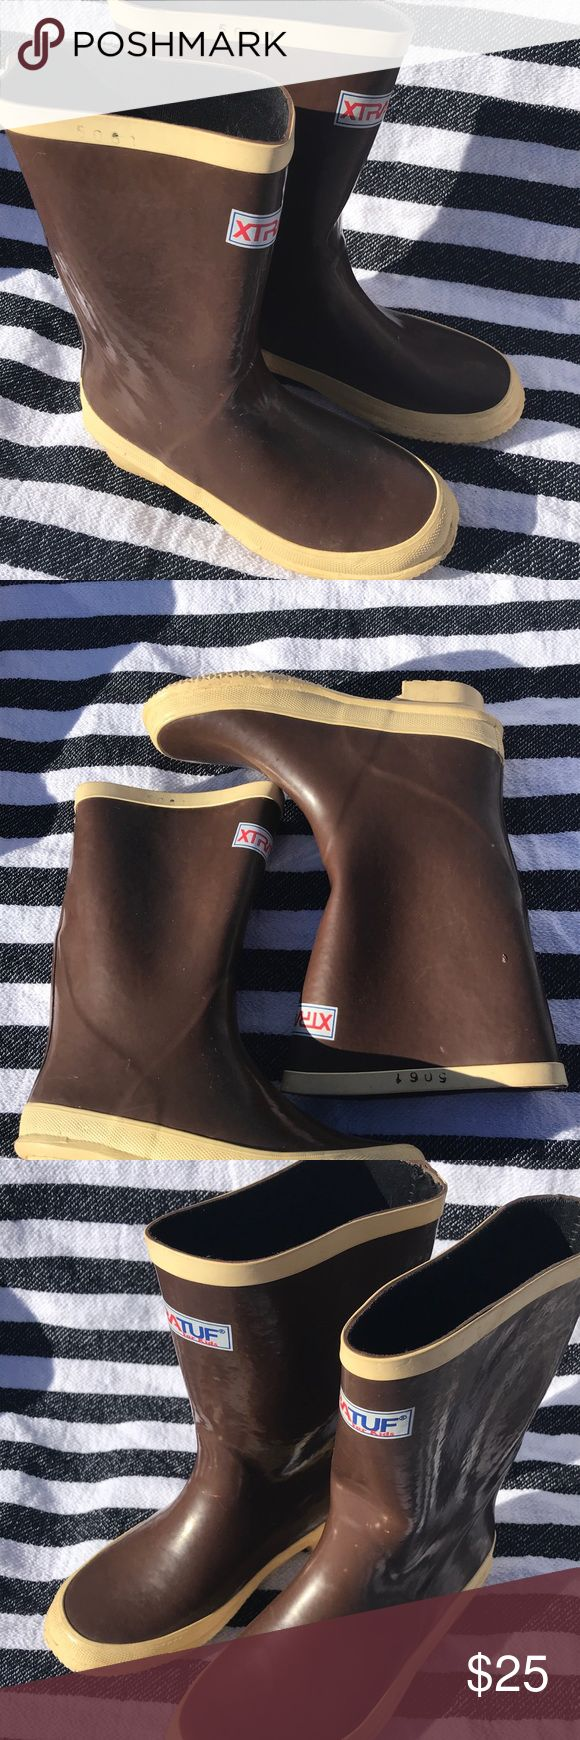 Xtratuf for kids rain boots 2y signature brown In great shape serial code stamped on sides xtratuf Shoes Rain & Snow Boots